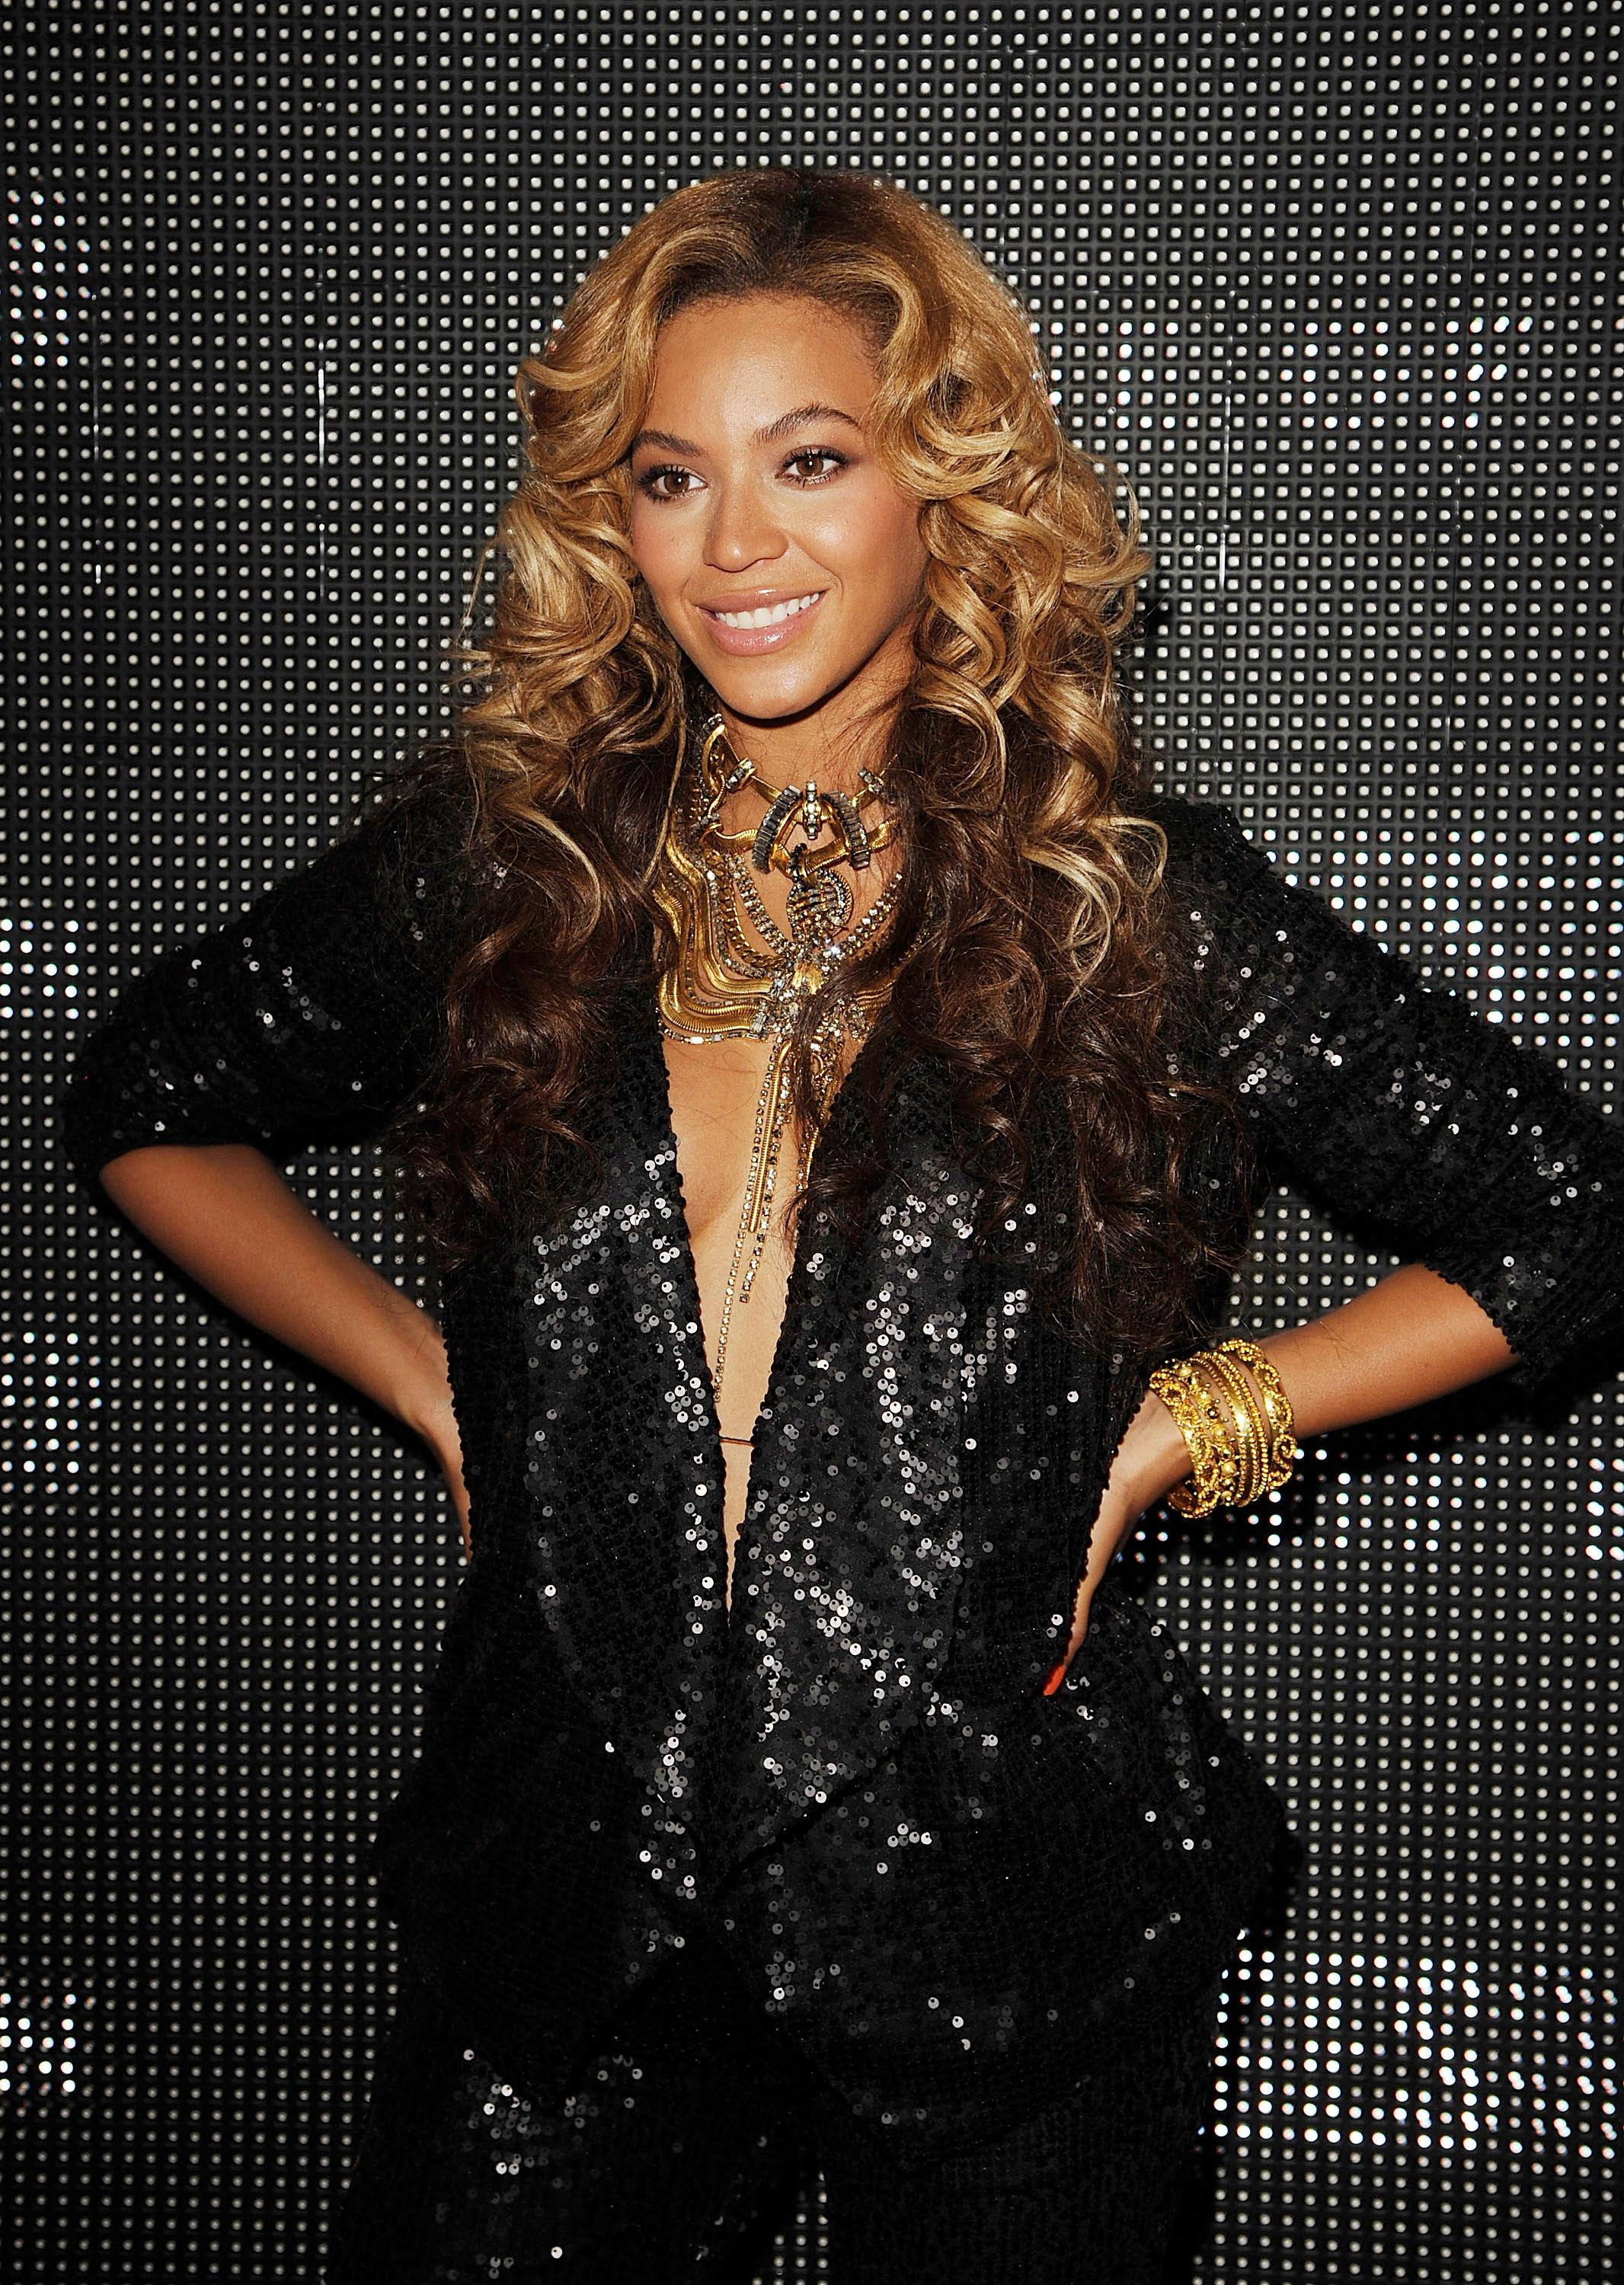 The Launch Of House Of Dereon By Beyonce And Tina Knowles